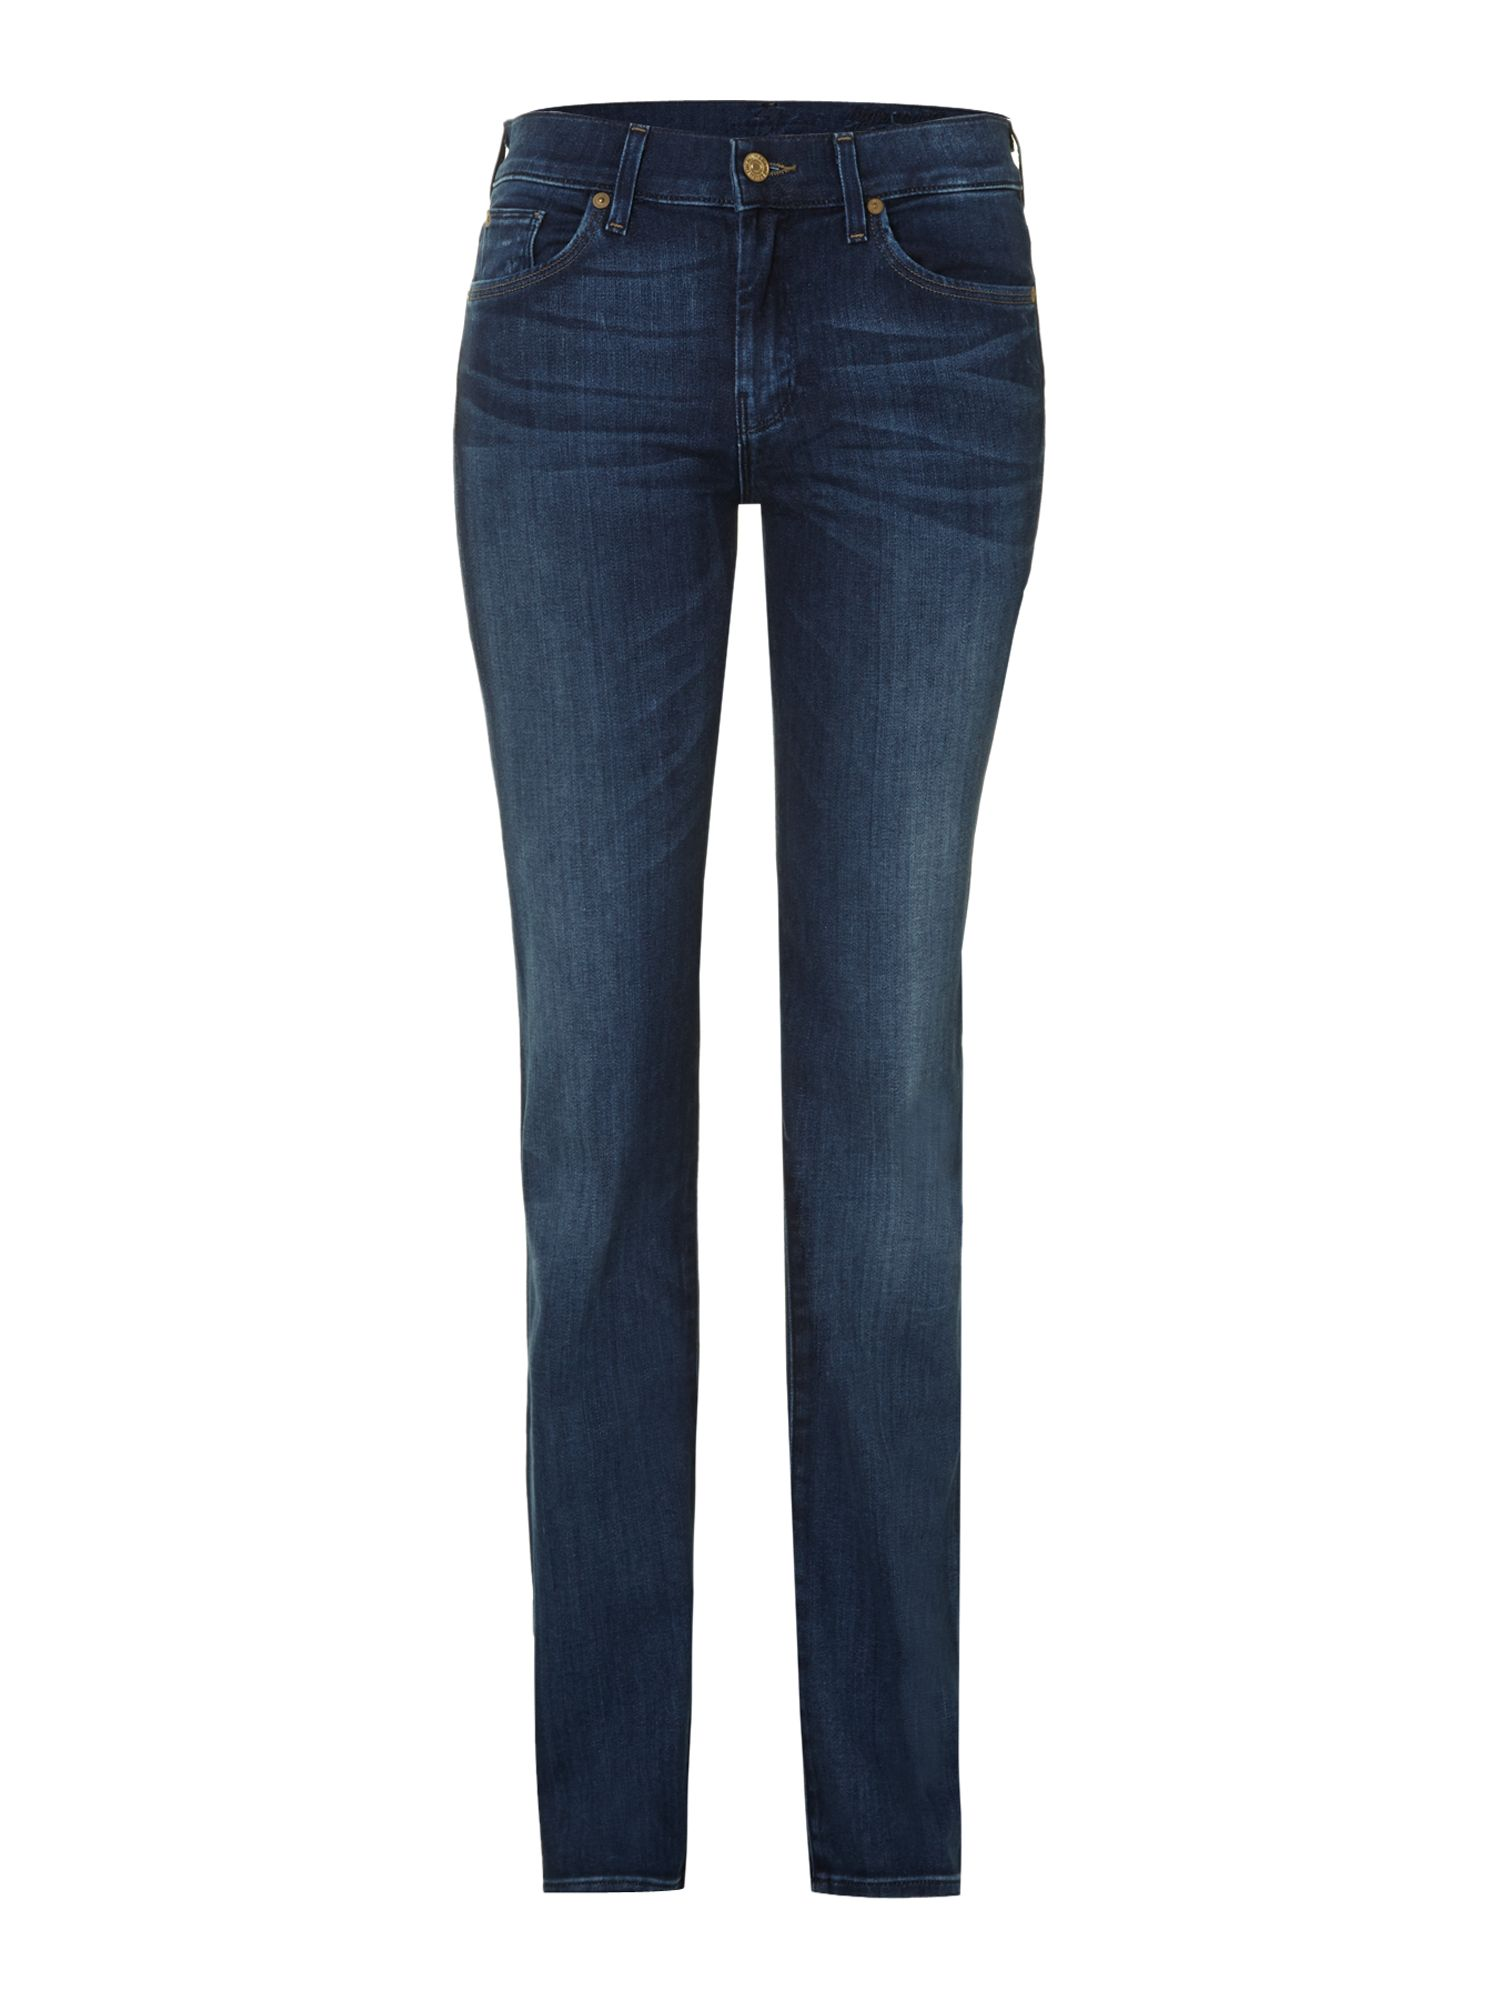 High waist straight leg jeans in Pacific Shadows